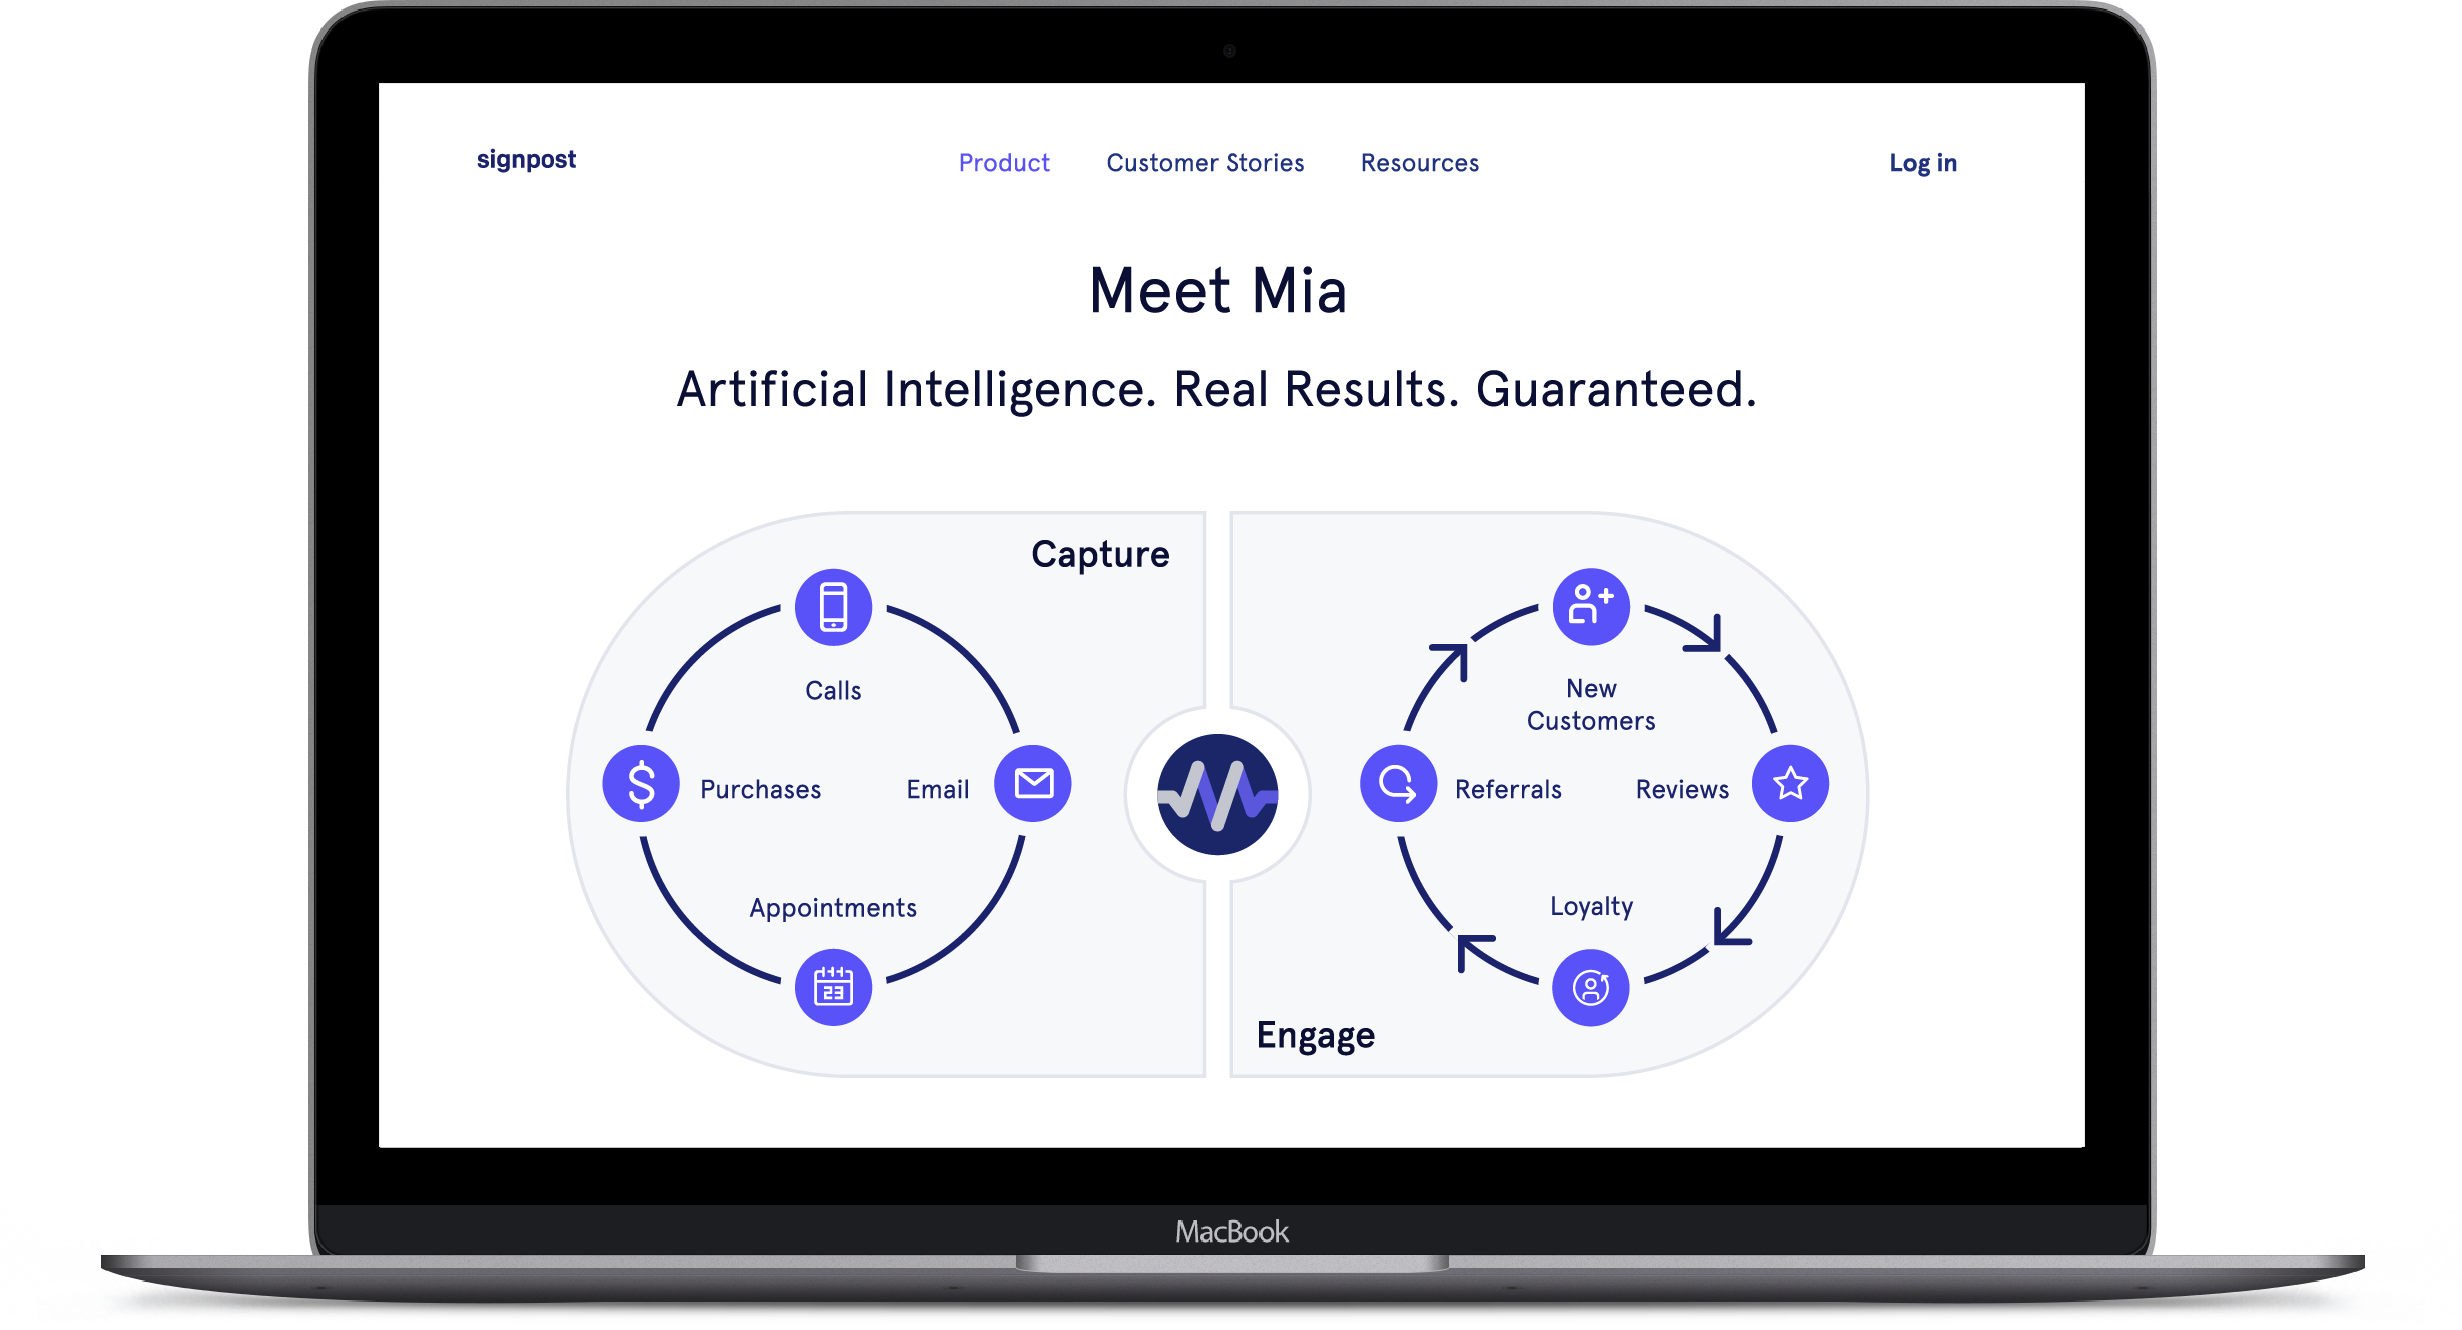 Mia automatically collects and analyzes consumer data from every touchpoint, including email, calls, and transactions. Armed with this data on new and existing customers, she intelligently manages customer relationships.